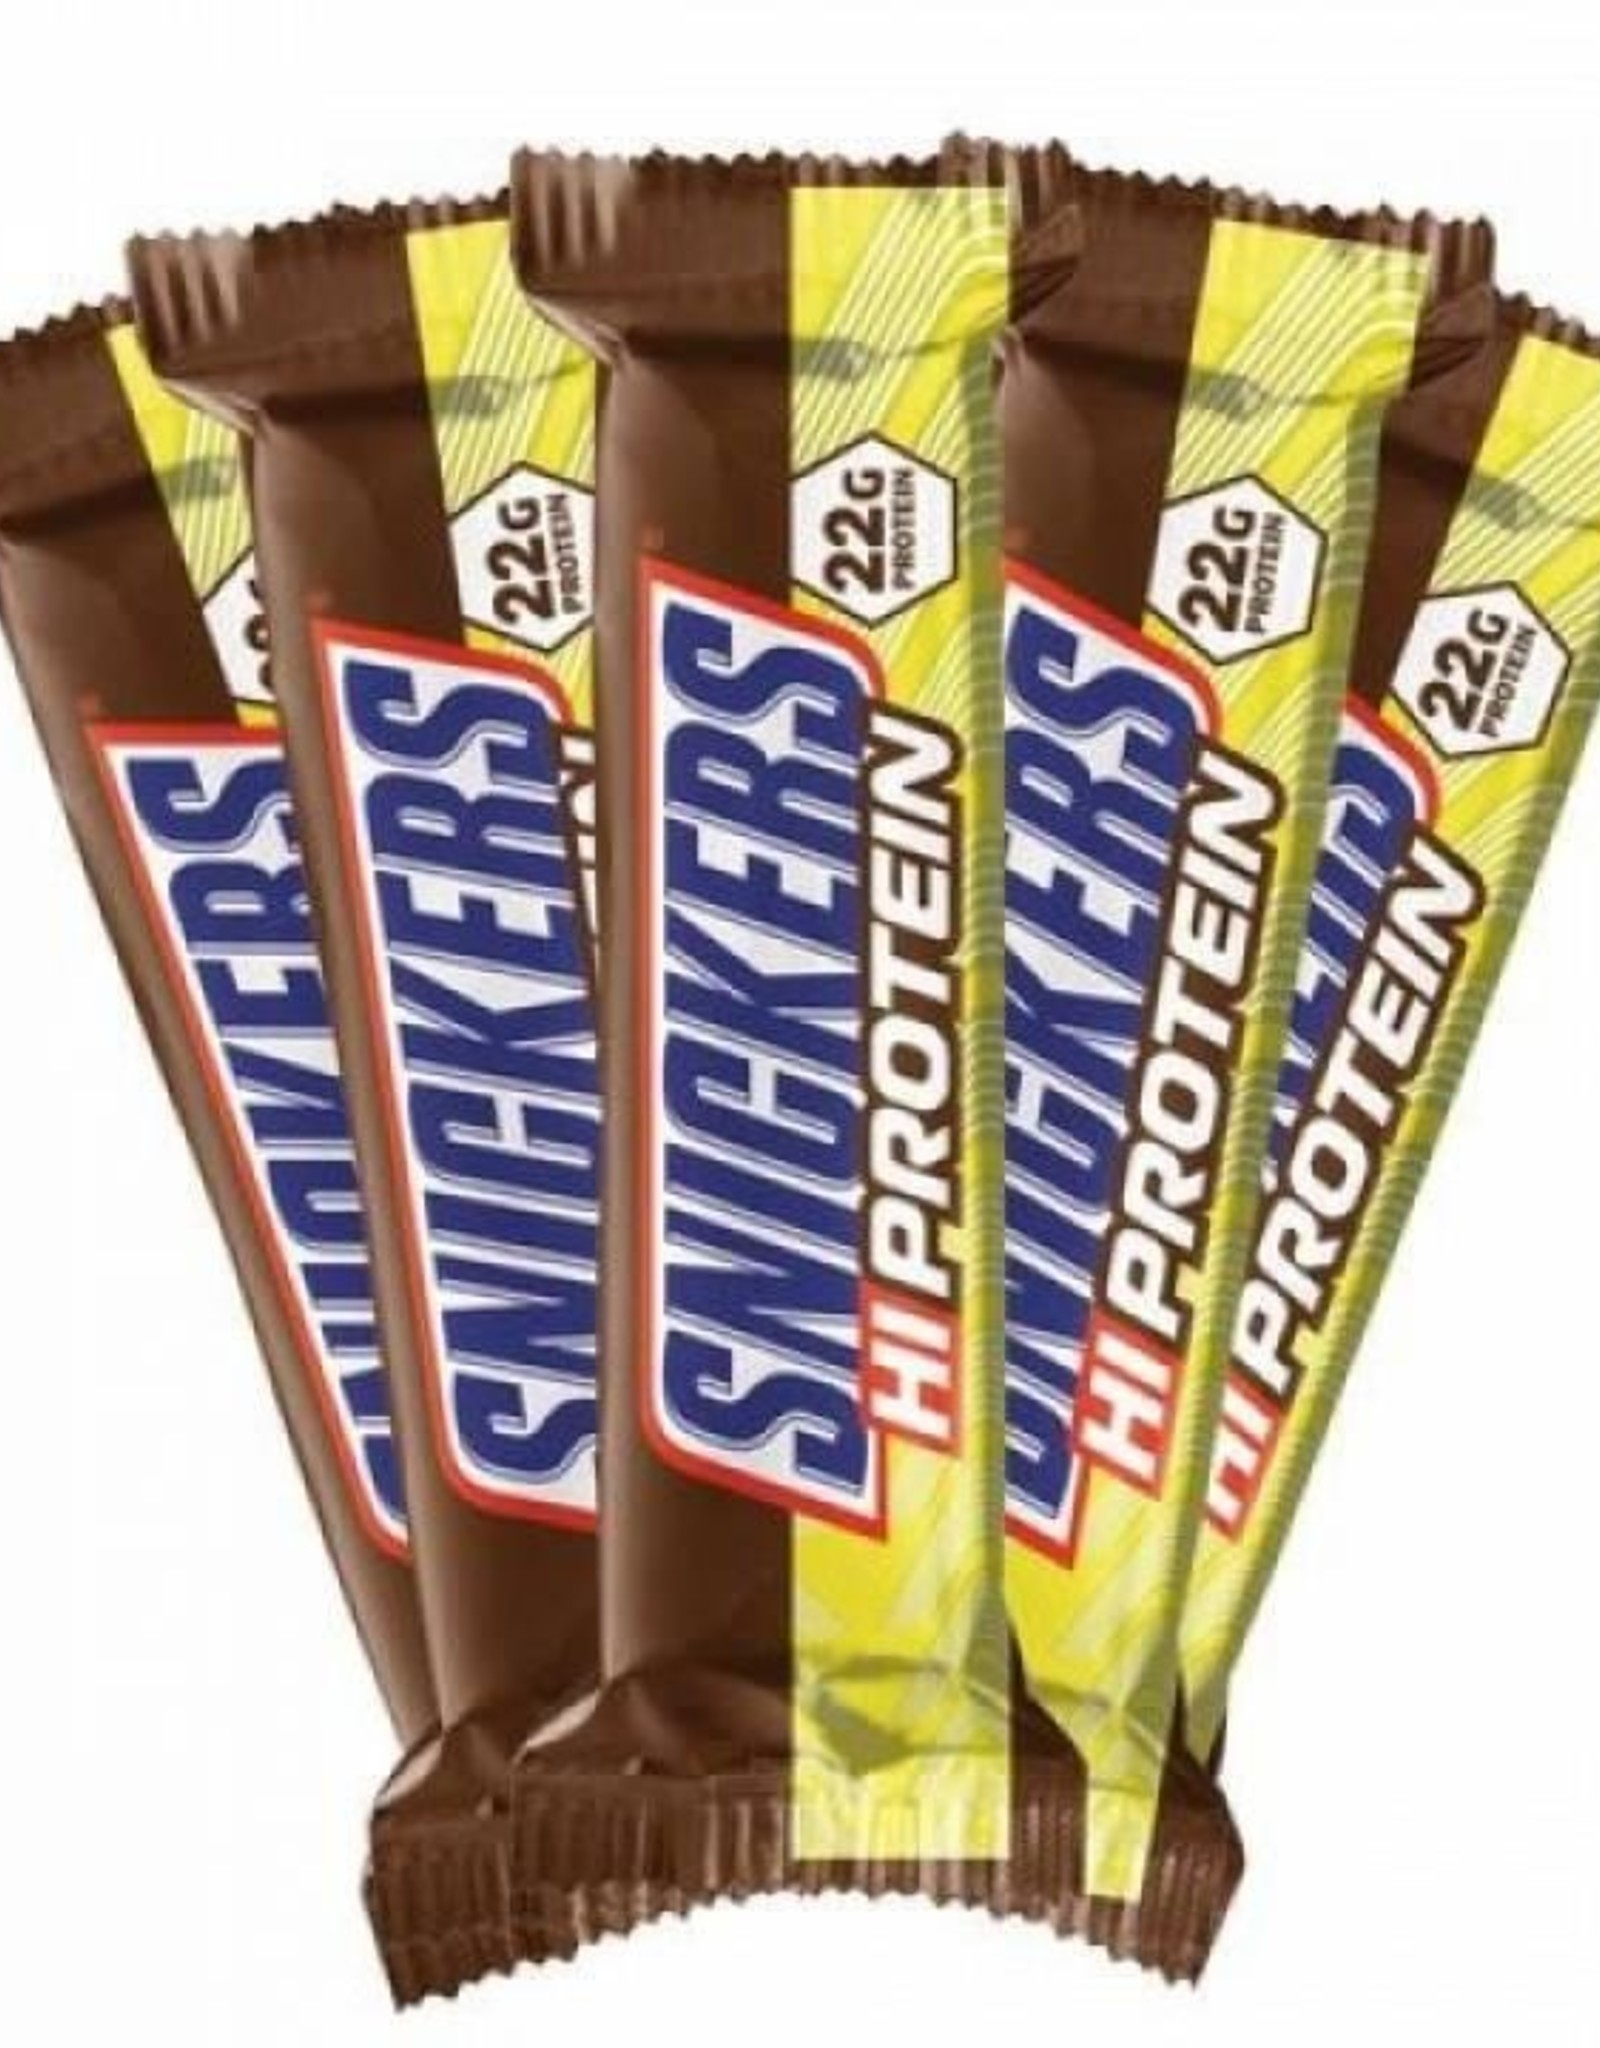 Mars Snickers high protein (20 gram protein)